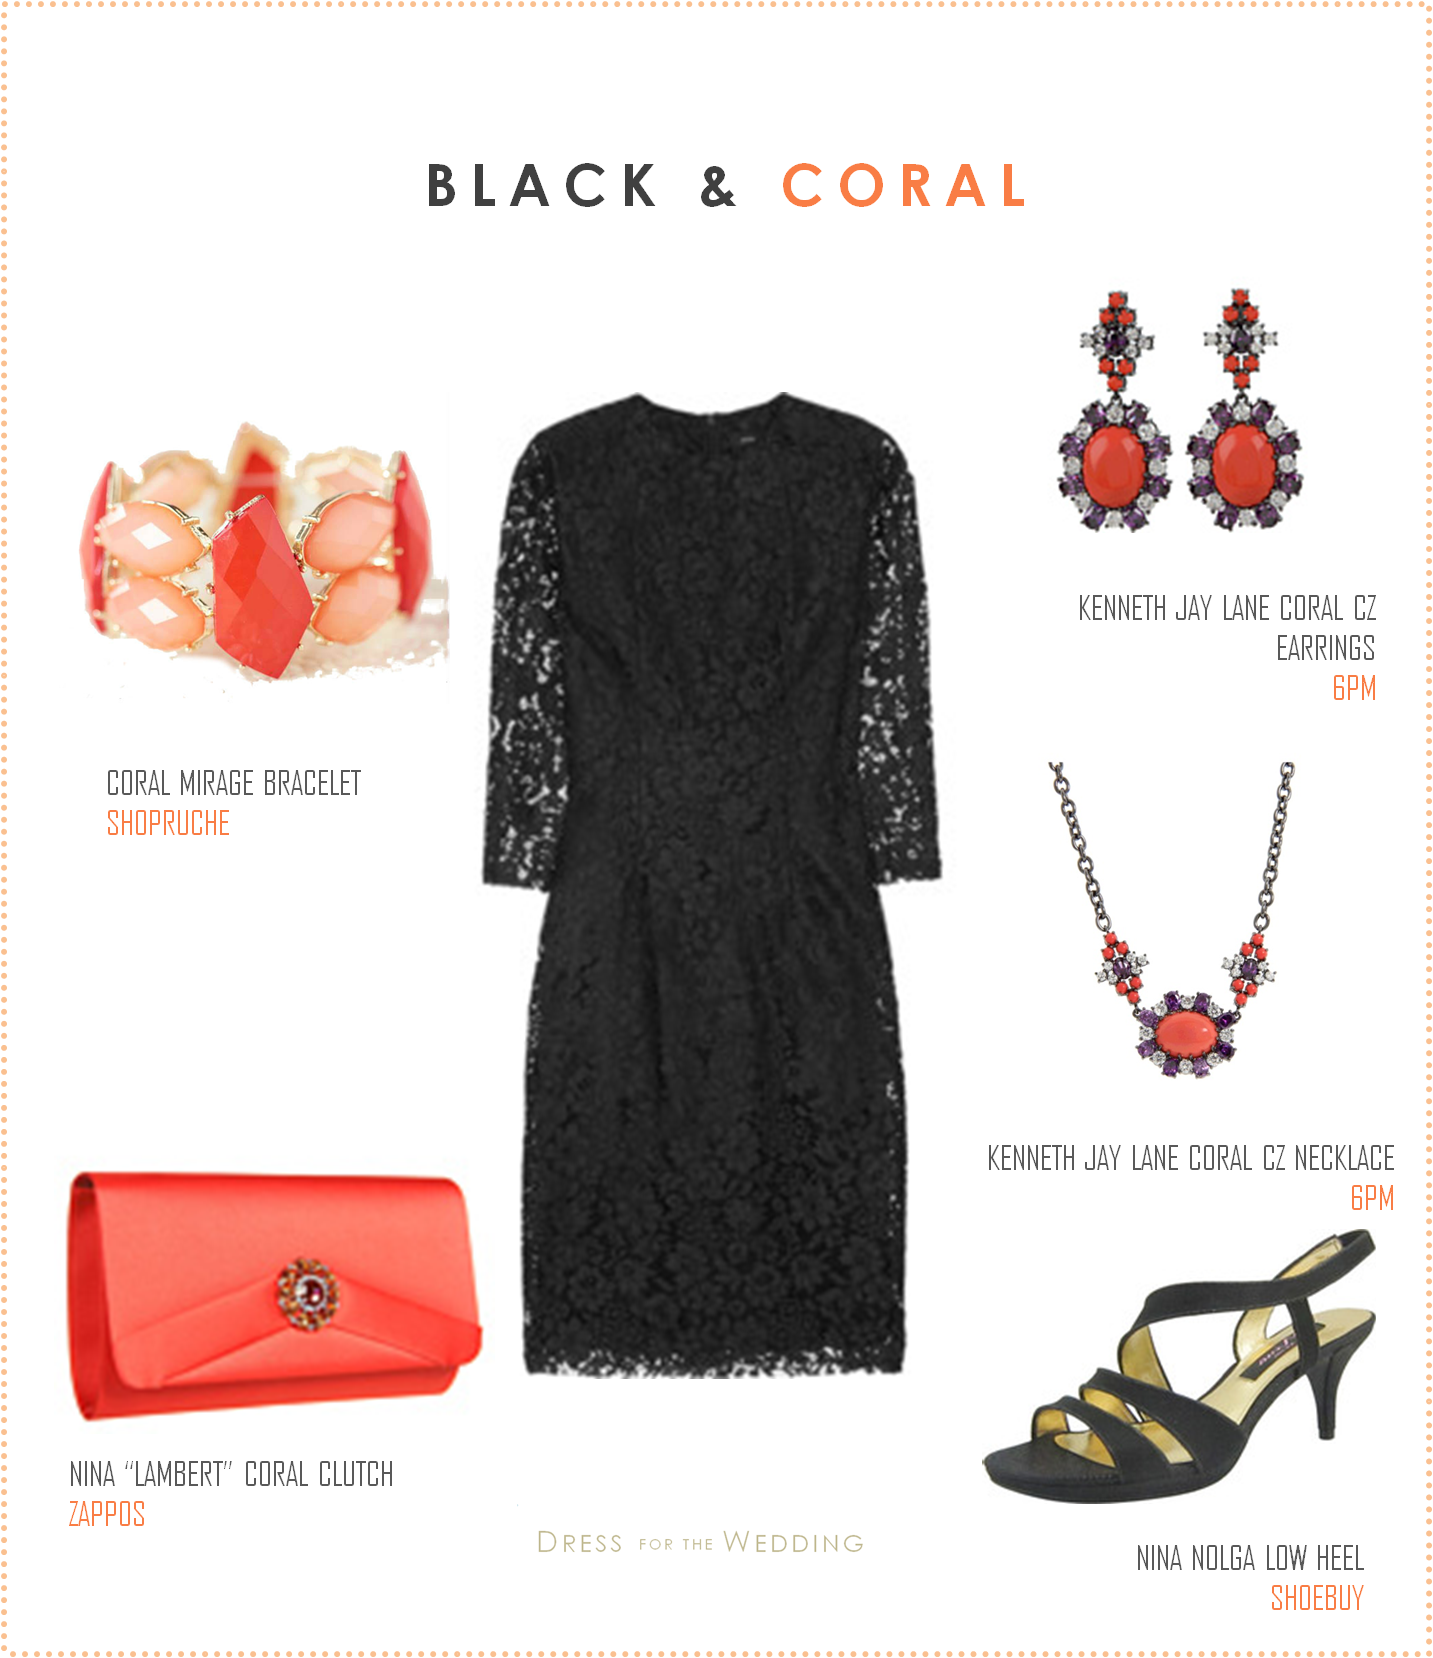 Accessories for a black lace dress